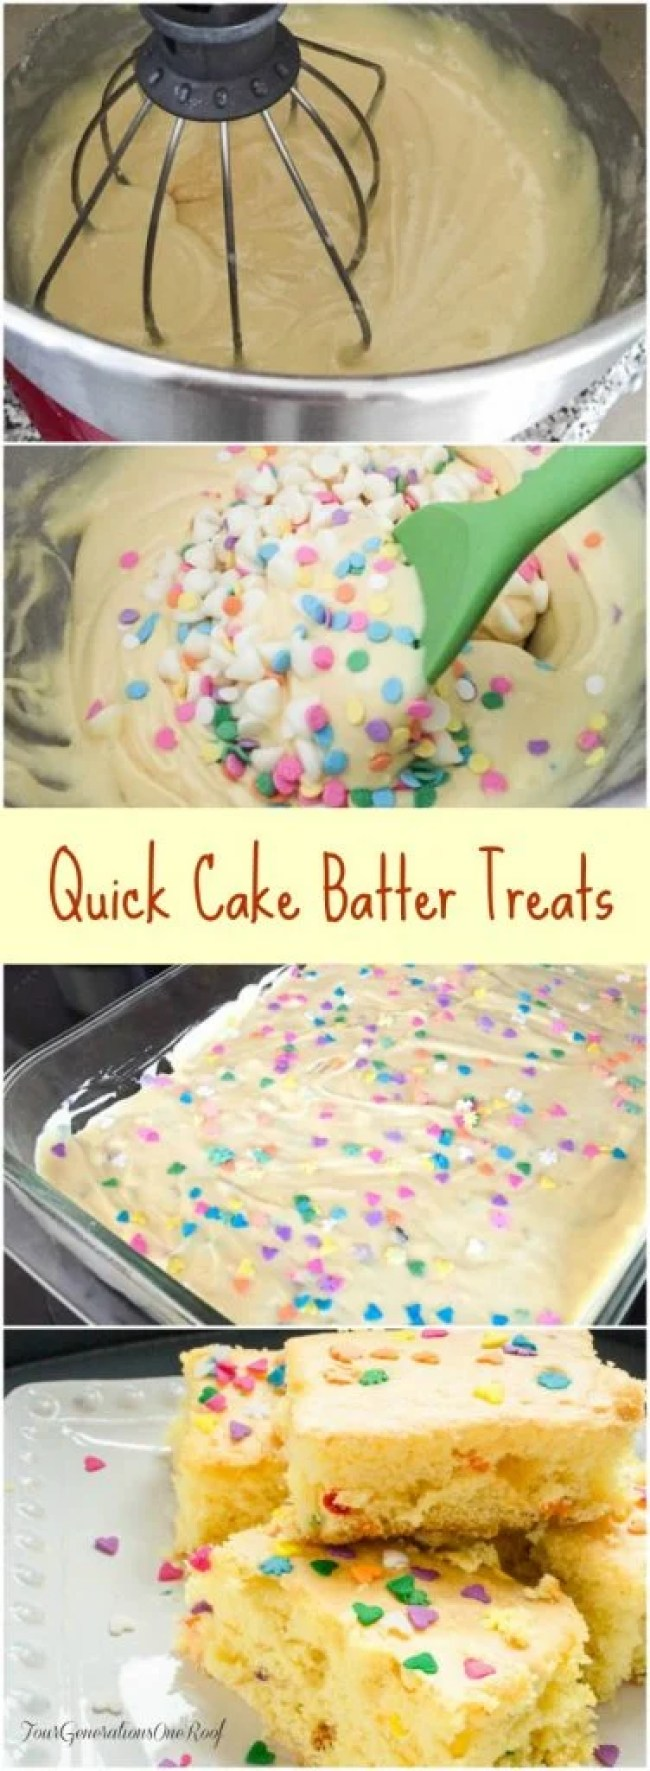 Quick Cake Batter Treats {perfect for Easter}